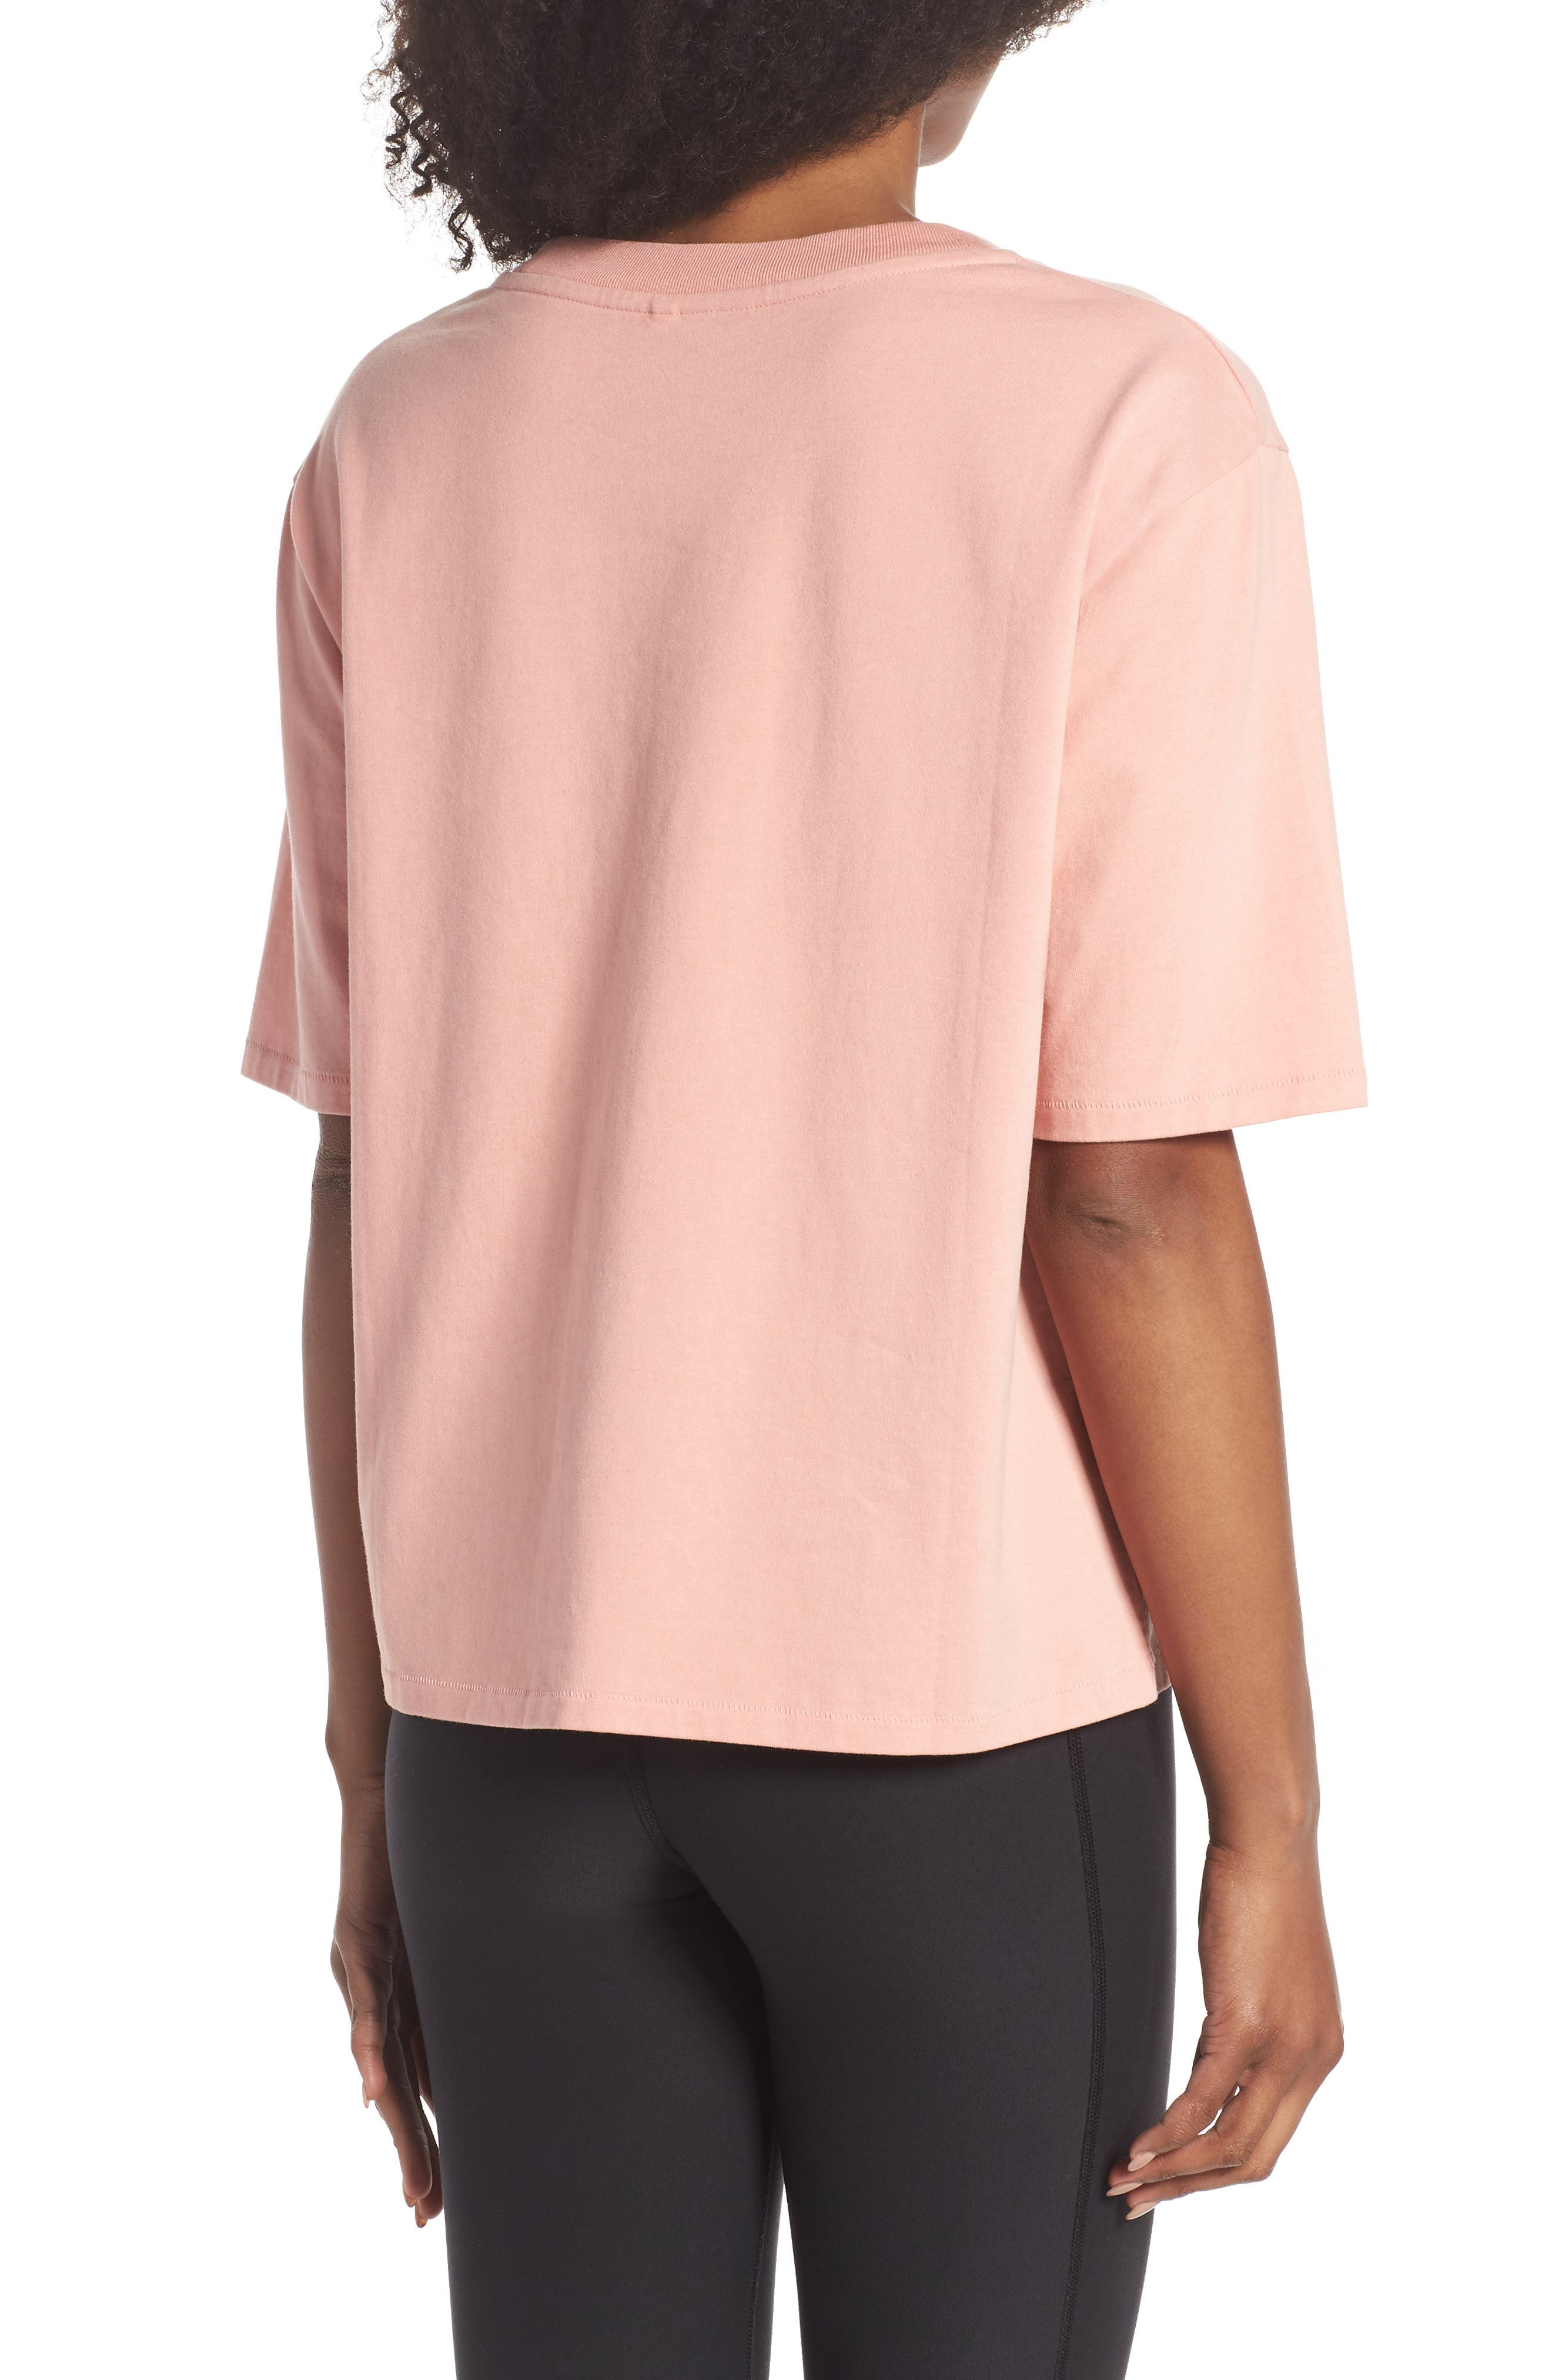 Active Duty Tee,                             Alternate thumbnail 2, color,                             PASTEL PINK